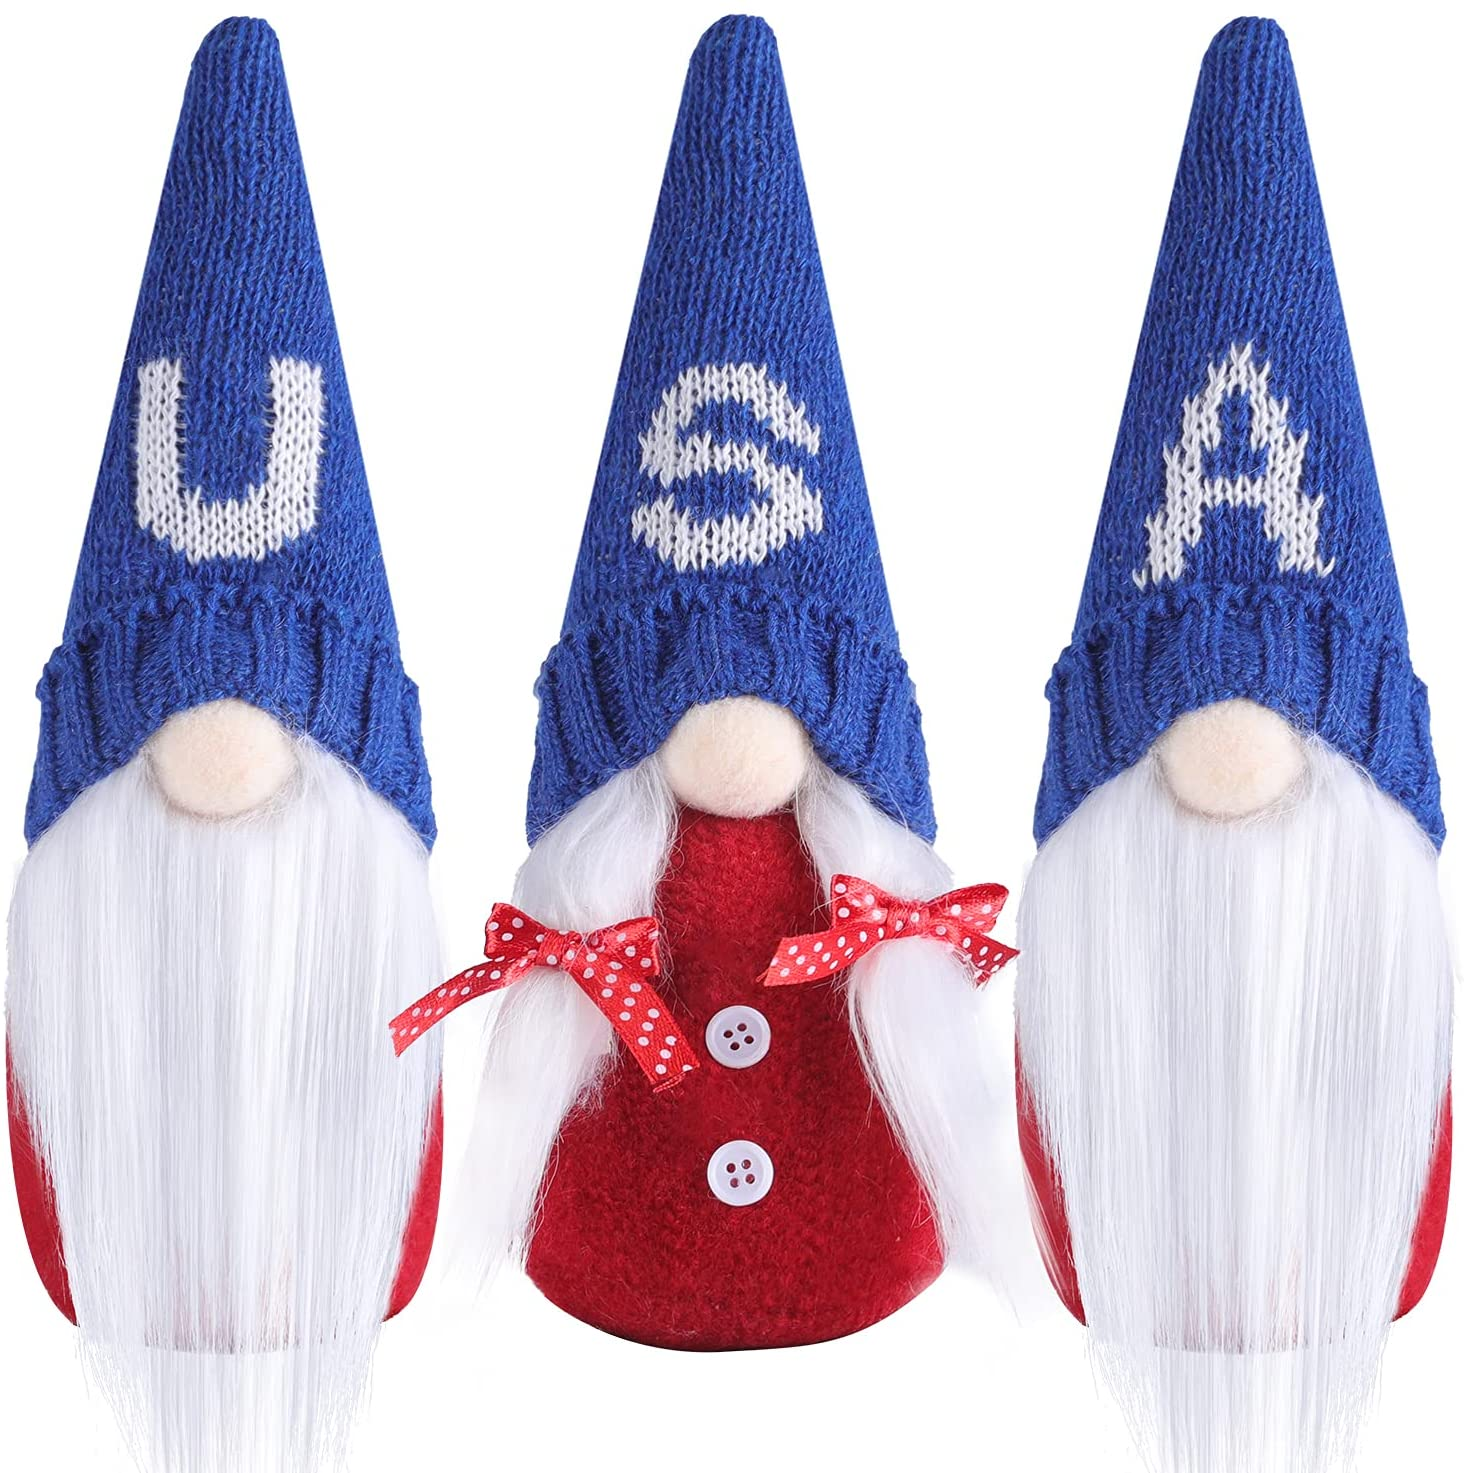 4th of July Patriotic Gnome Plush Elf Decorations - 3PCS Handmade Gnomes Plush American Stars and Stripes Scandinavian Tomte - Fourth of July Veterans Day Gift, Independence Day Home Decoration